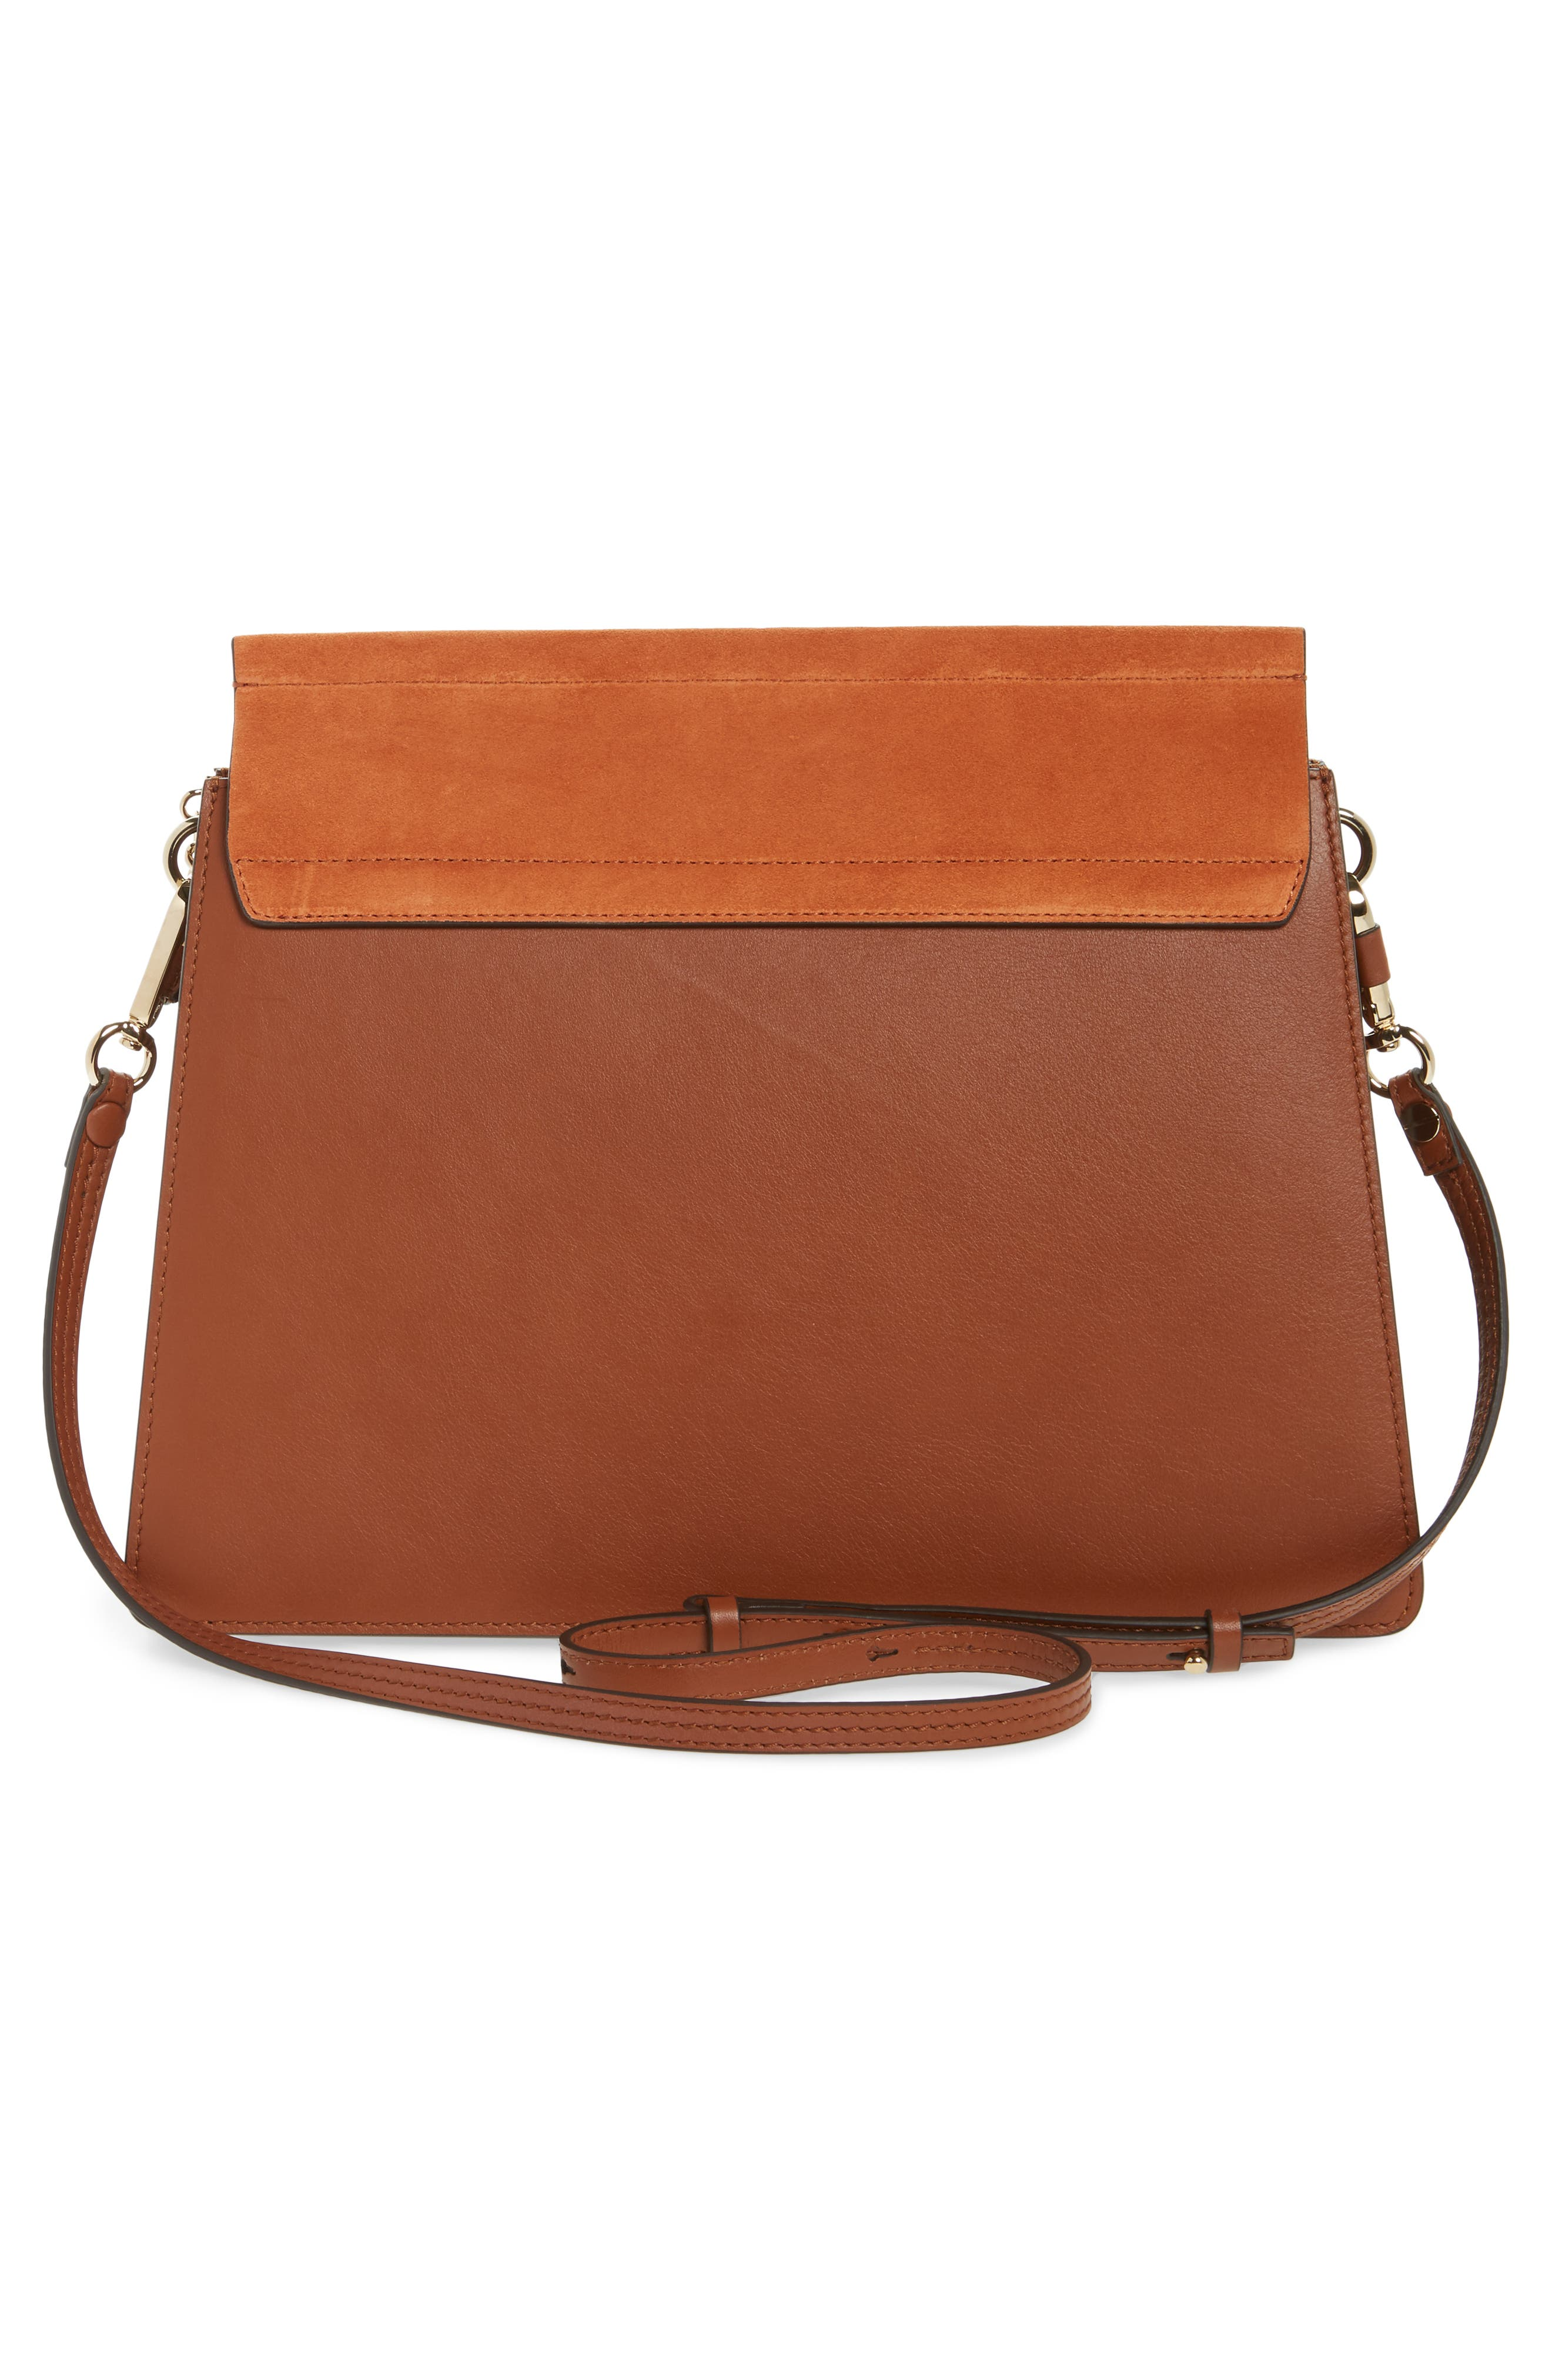 Faye Suede & Leather Shoulder Bag,                             Alternate thumbnail 3, color,                             CLASSIC TOBACCO